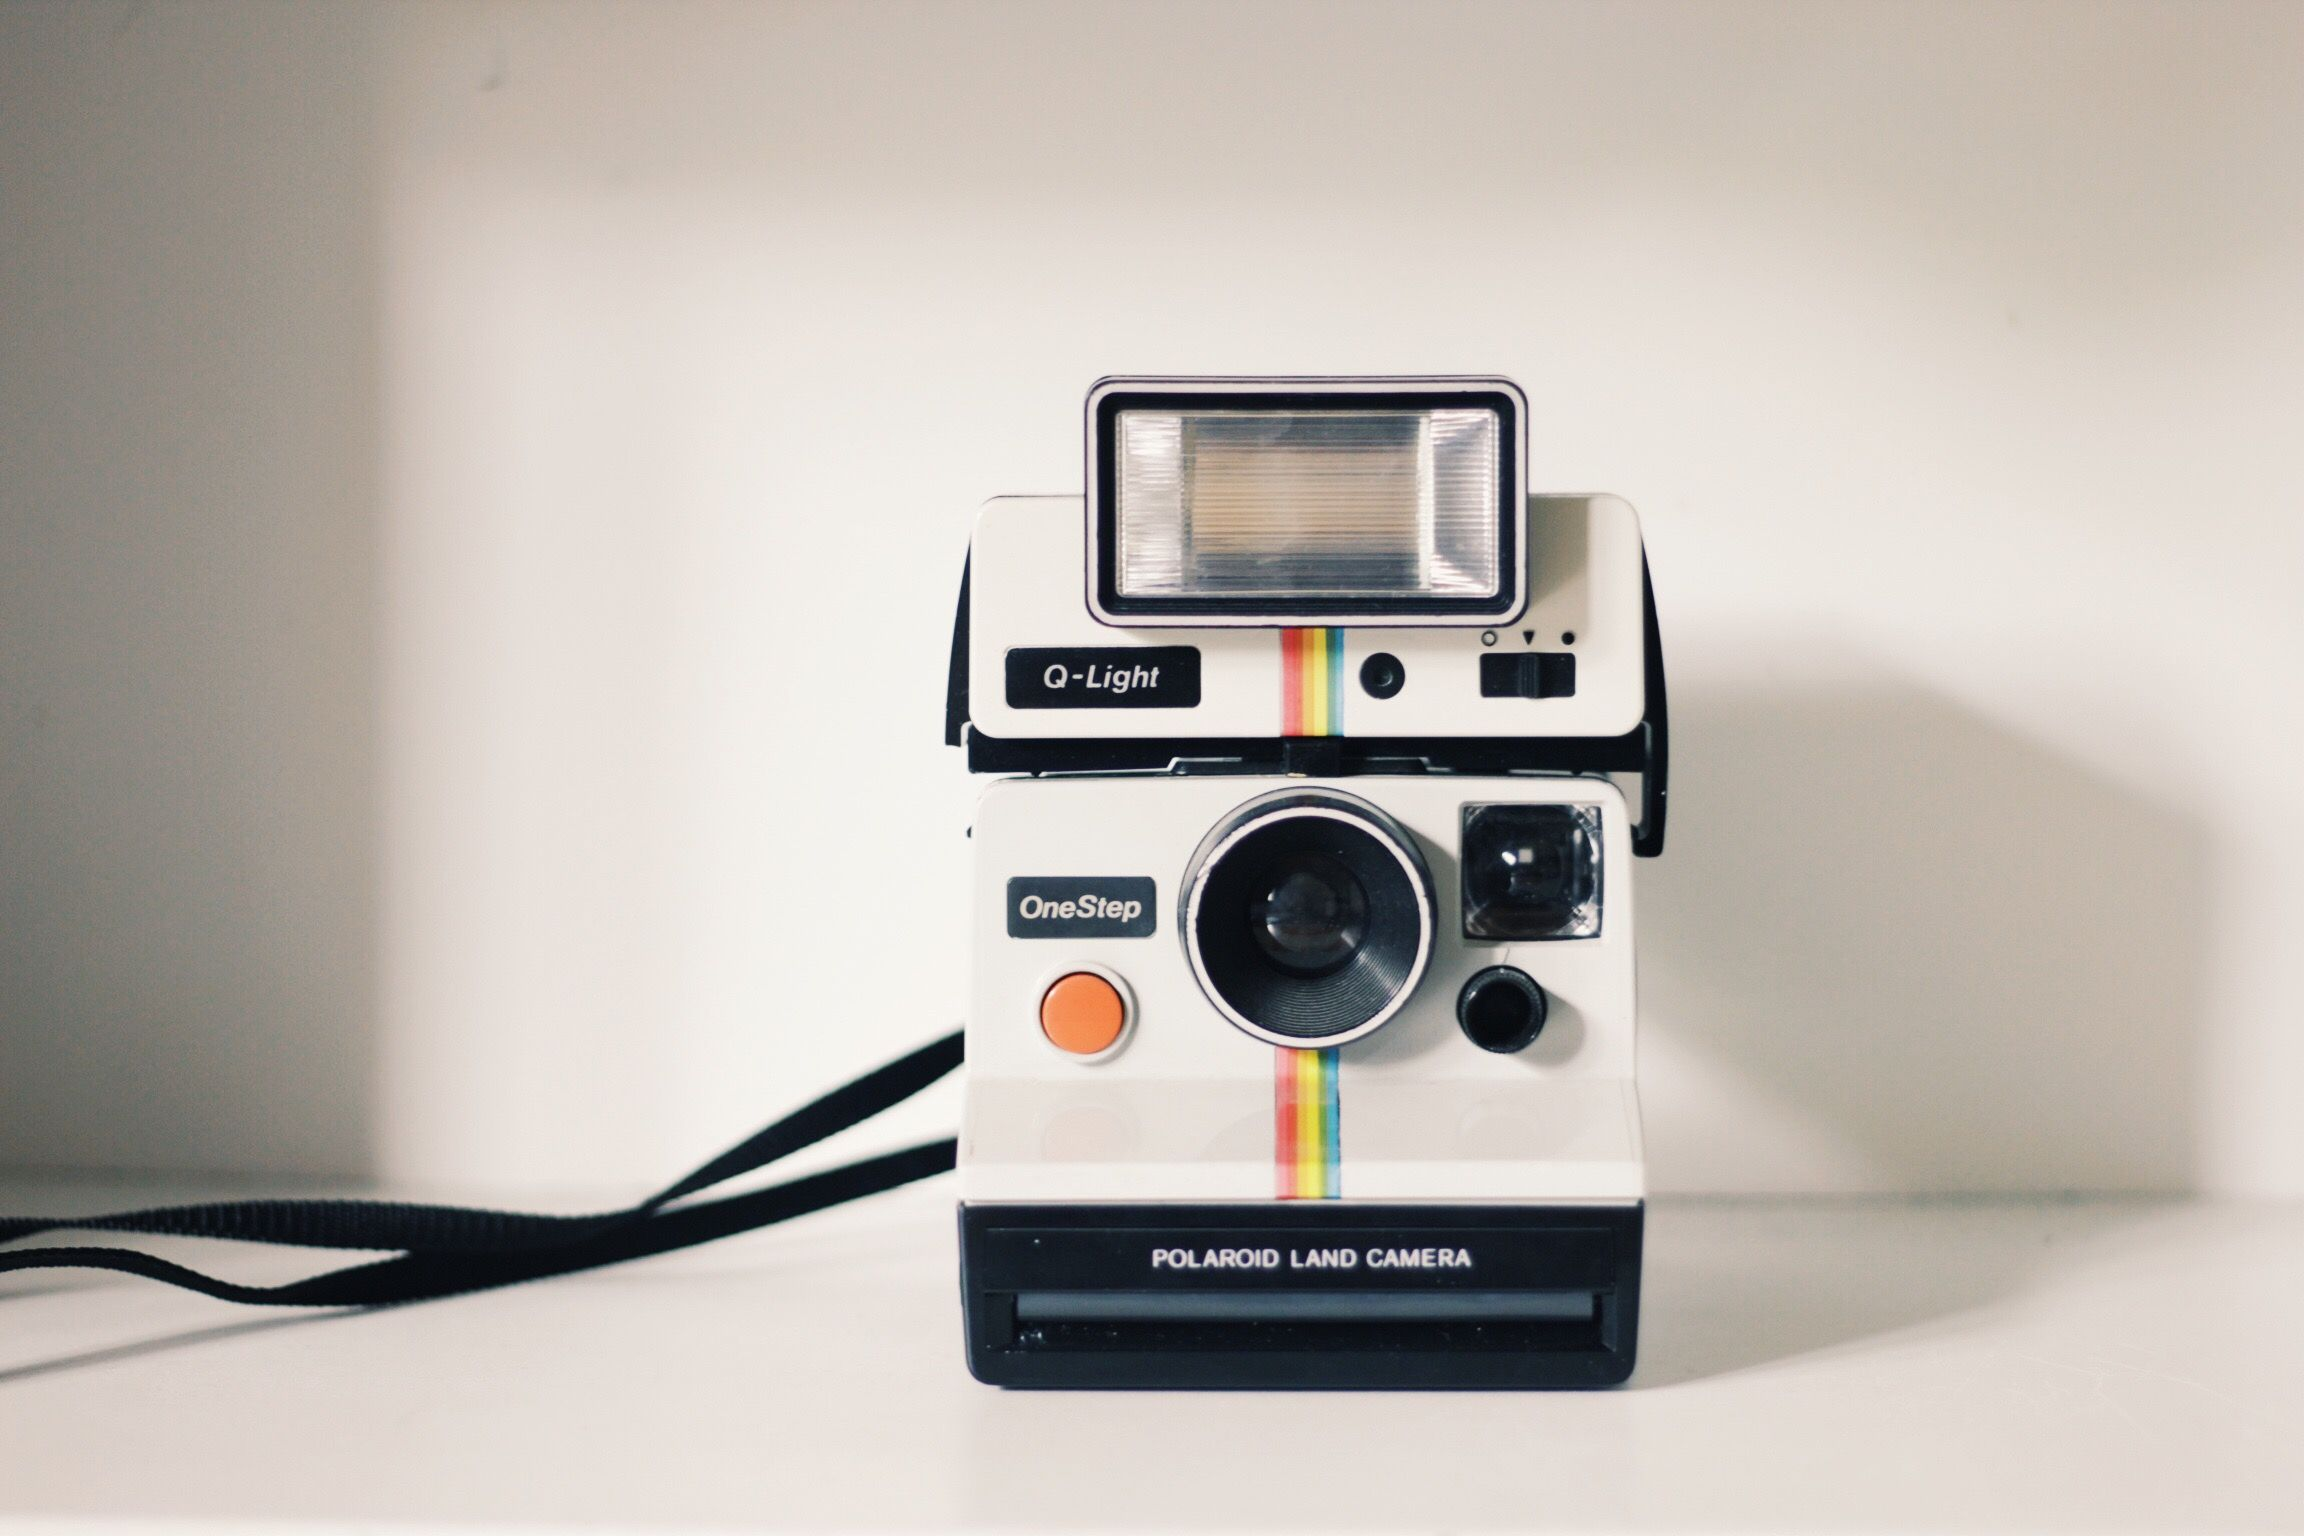 Polaroid Camera Urban Outfitters Uk : Polaroid vintage photography film camera hipster aesthetic